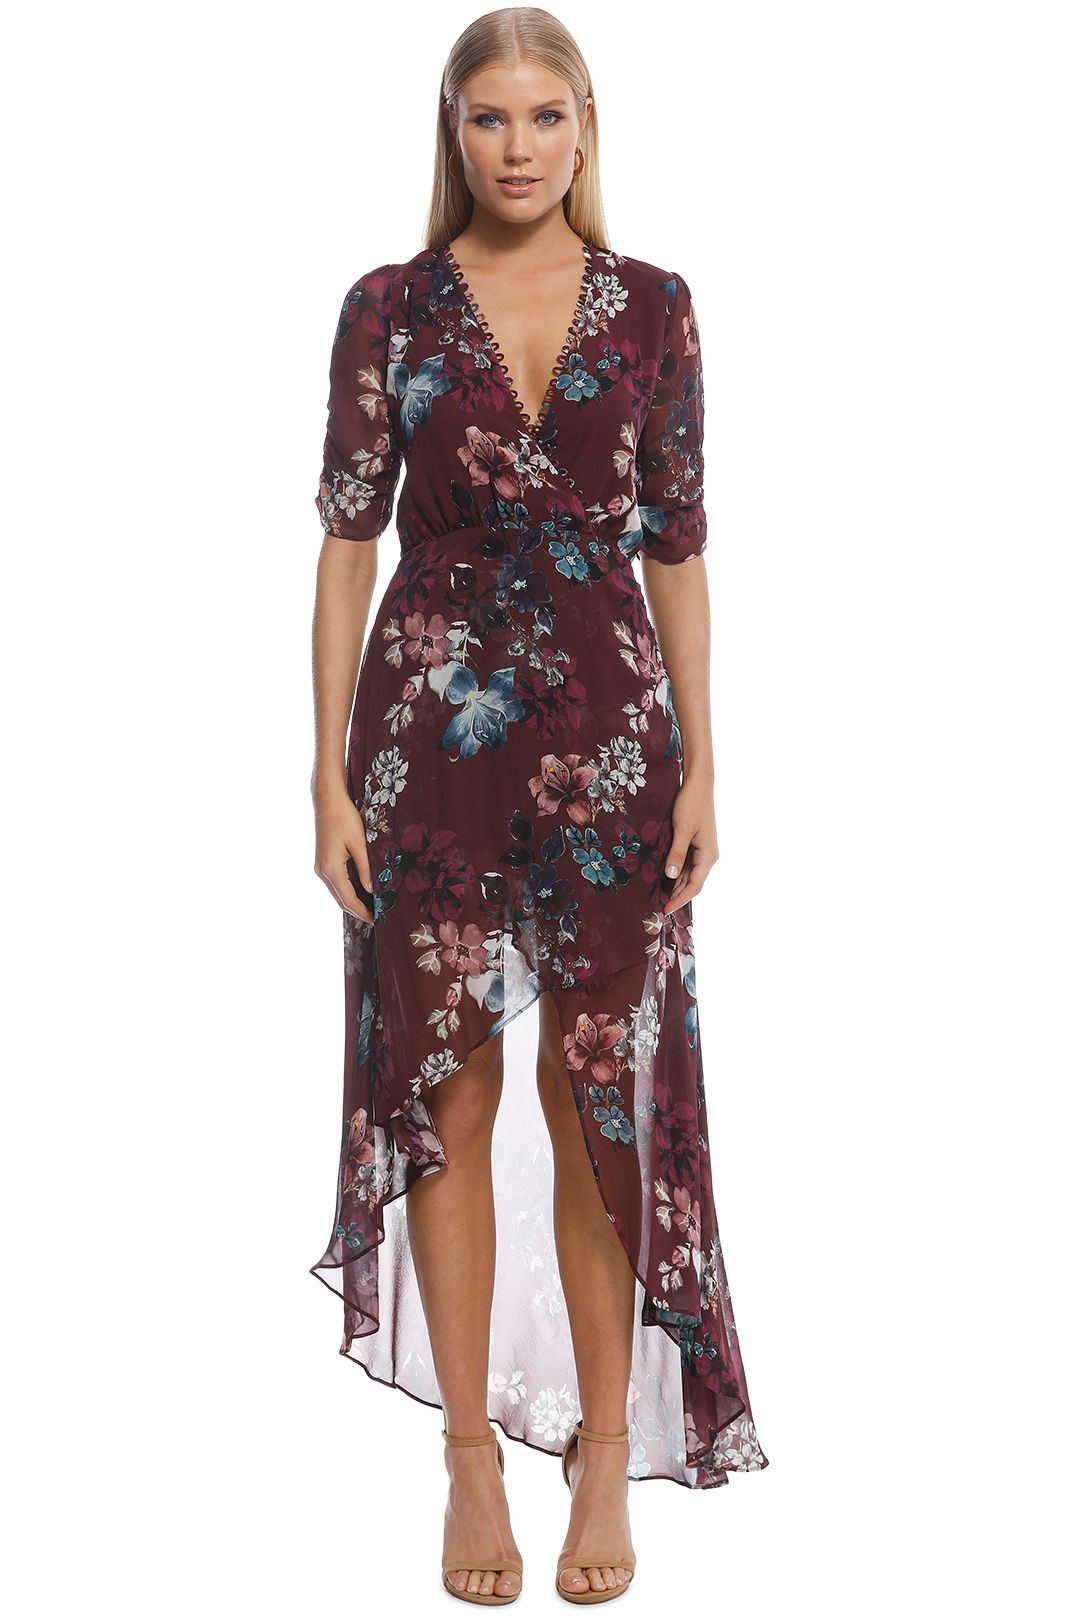 Nicholas the Label - Burgundy SS Floral Wrap Drape Dress - Burgundy - Front